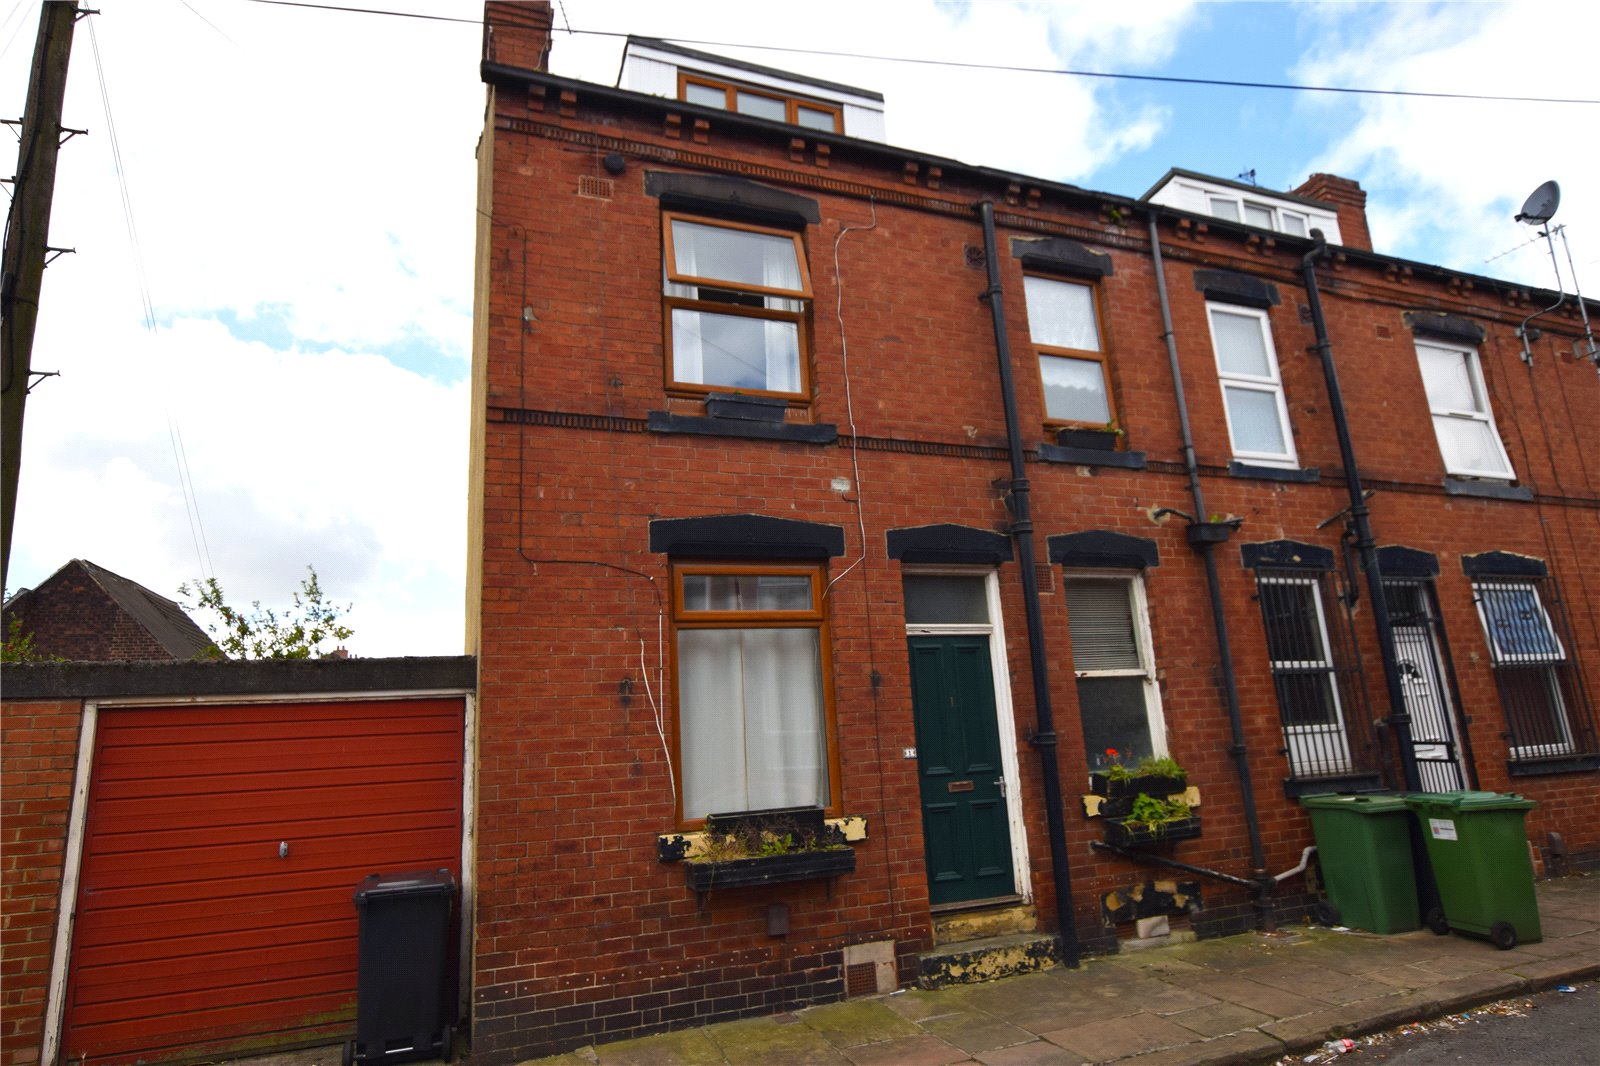 Yorkshire Terrace: Whitegates South Leeds 2 Bedroom House For Sale In Marley